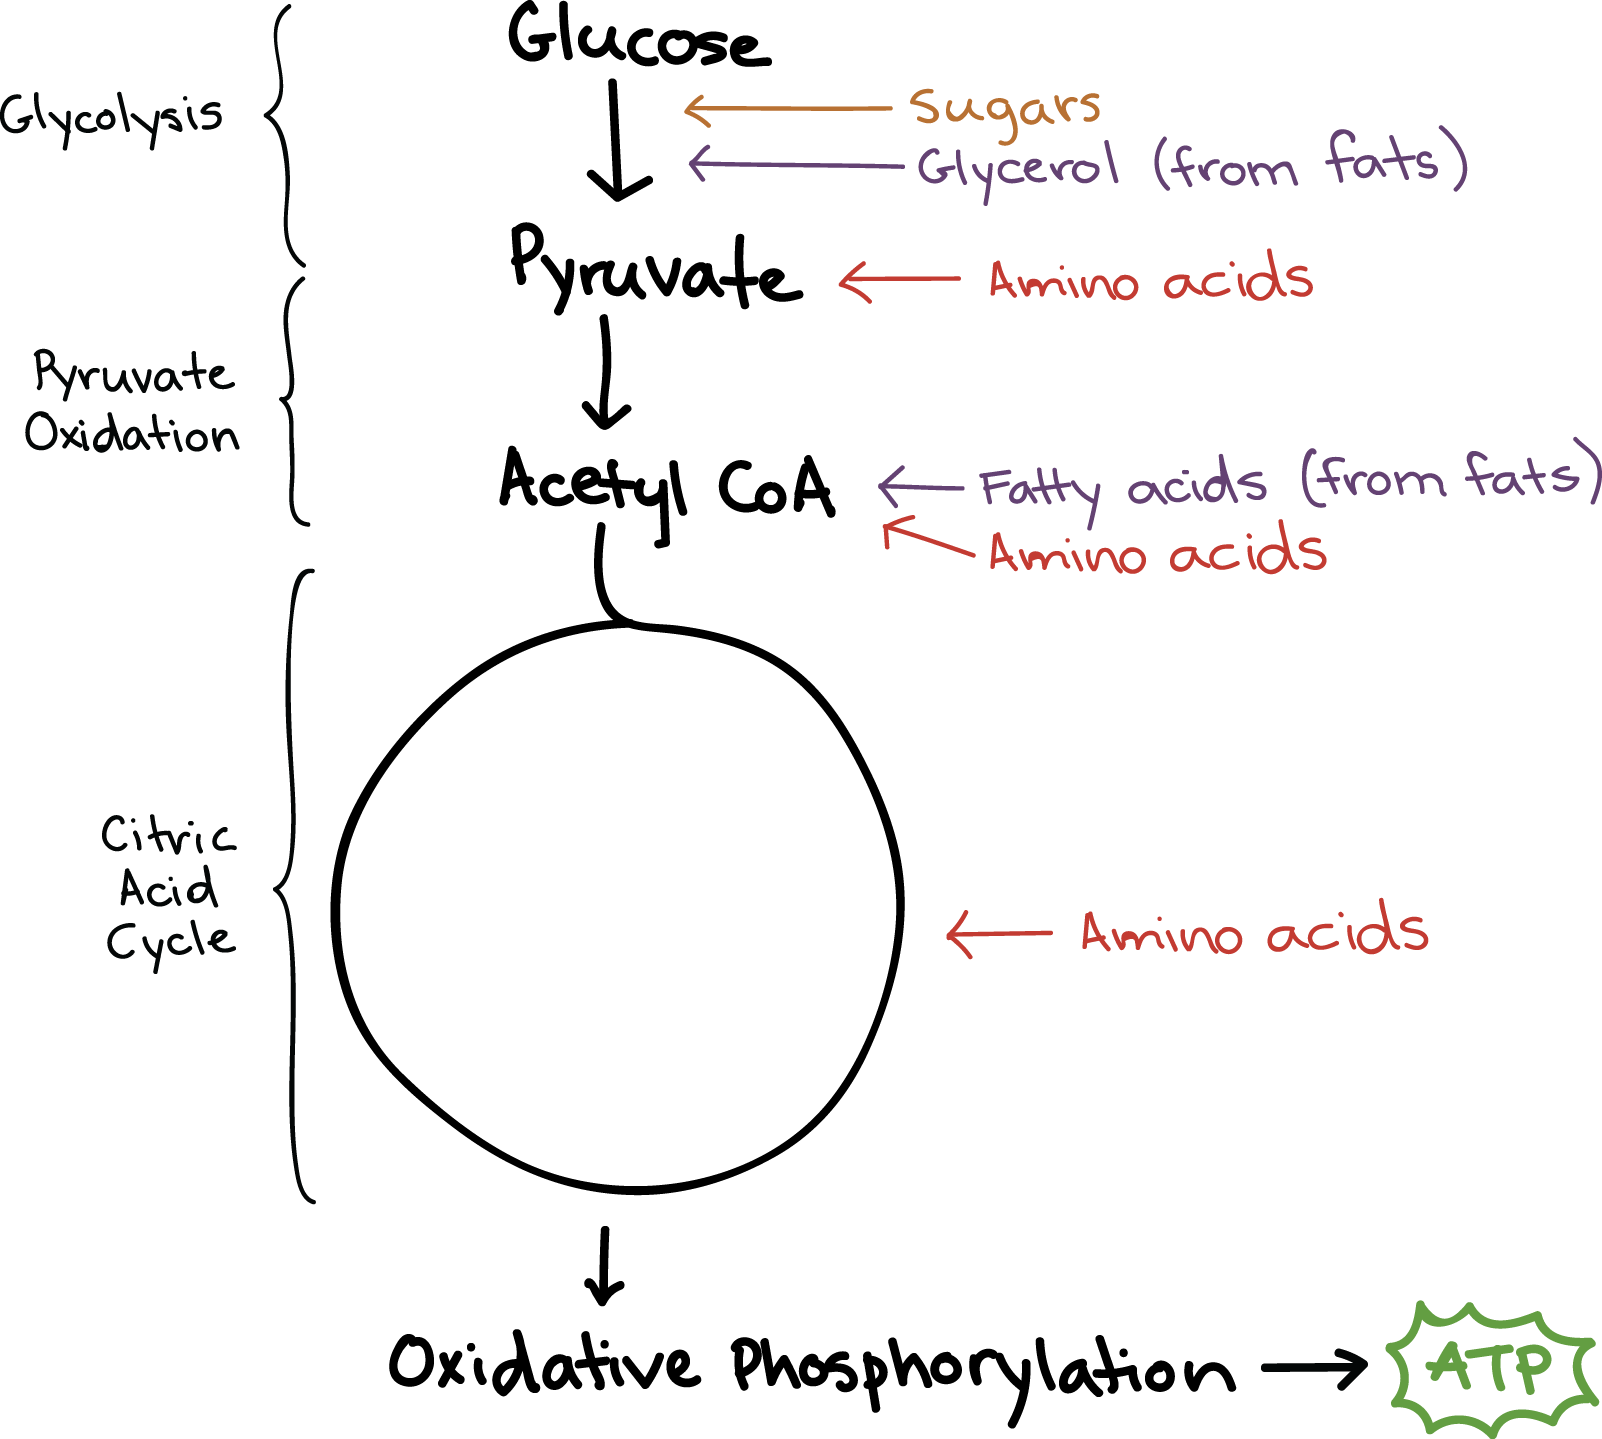 products of aerobic respiration include